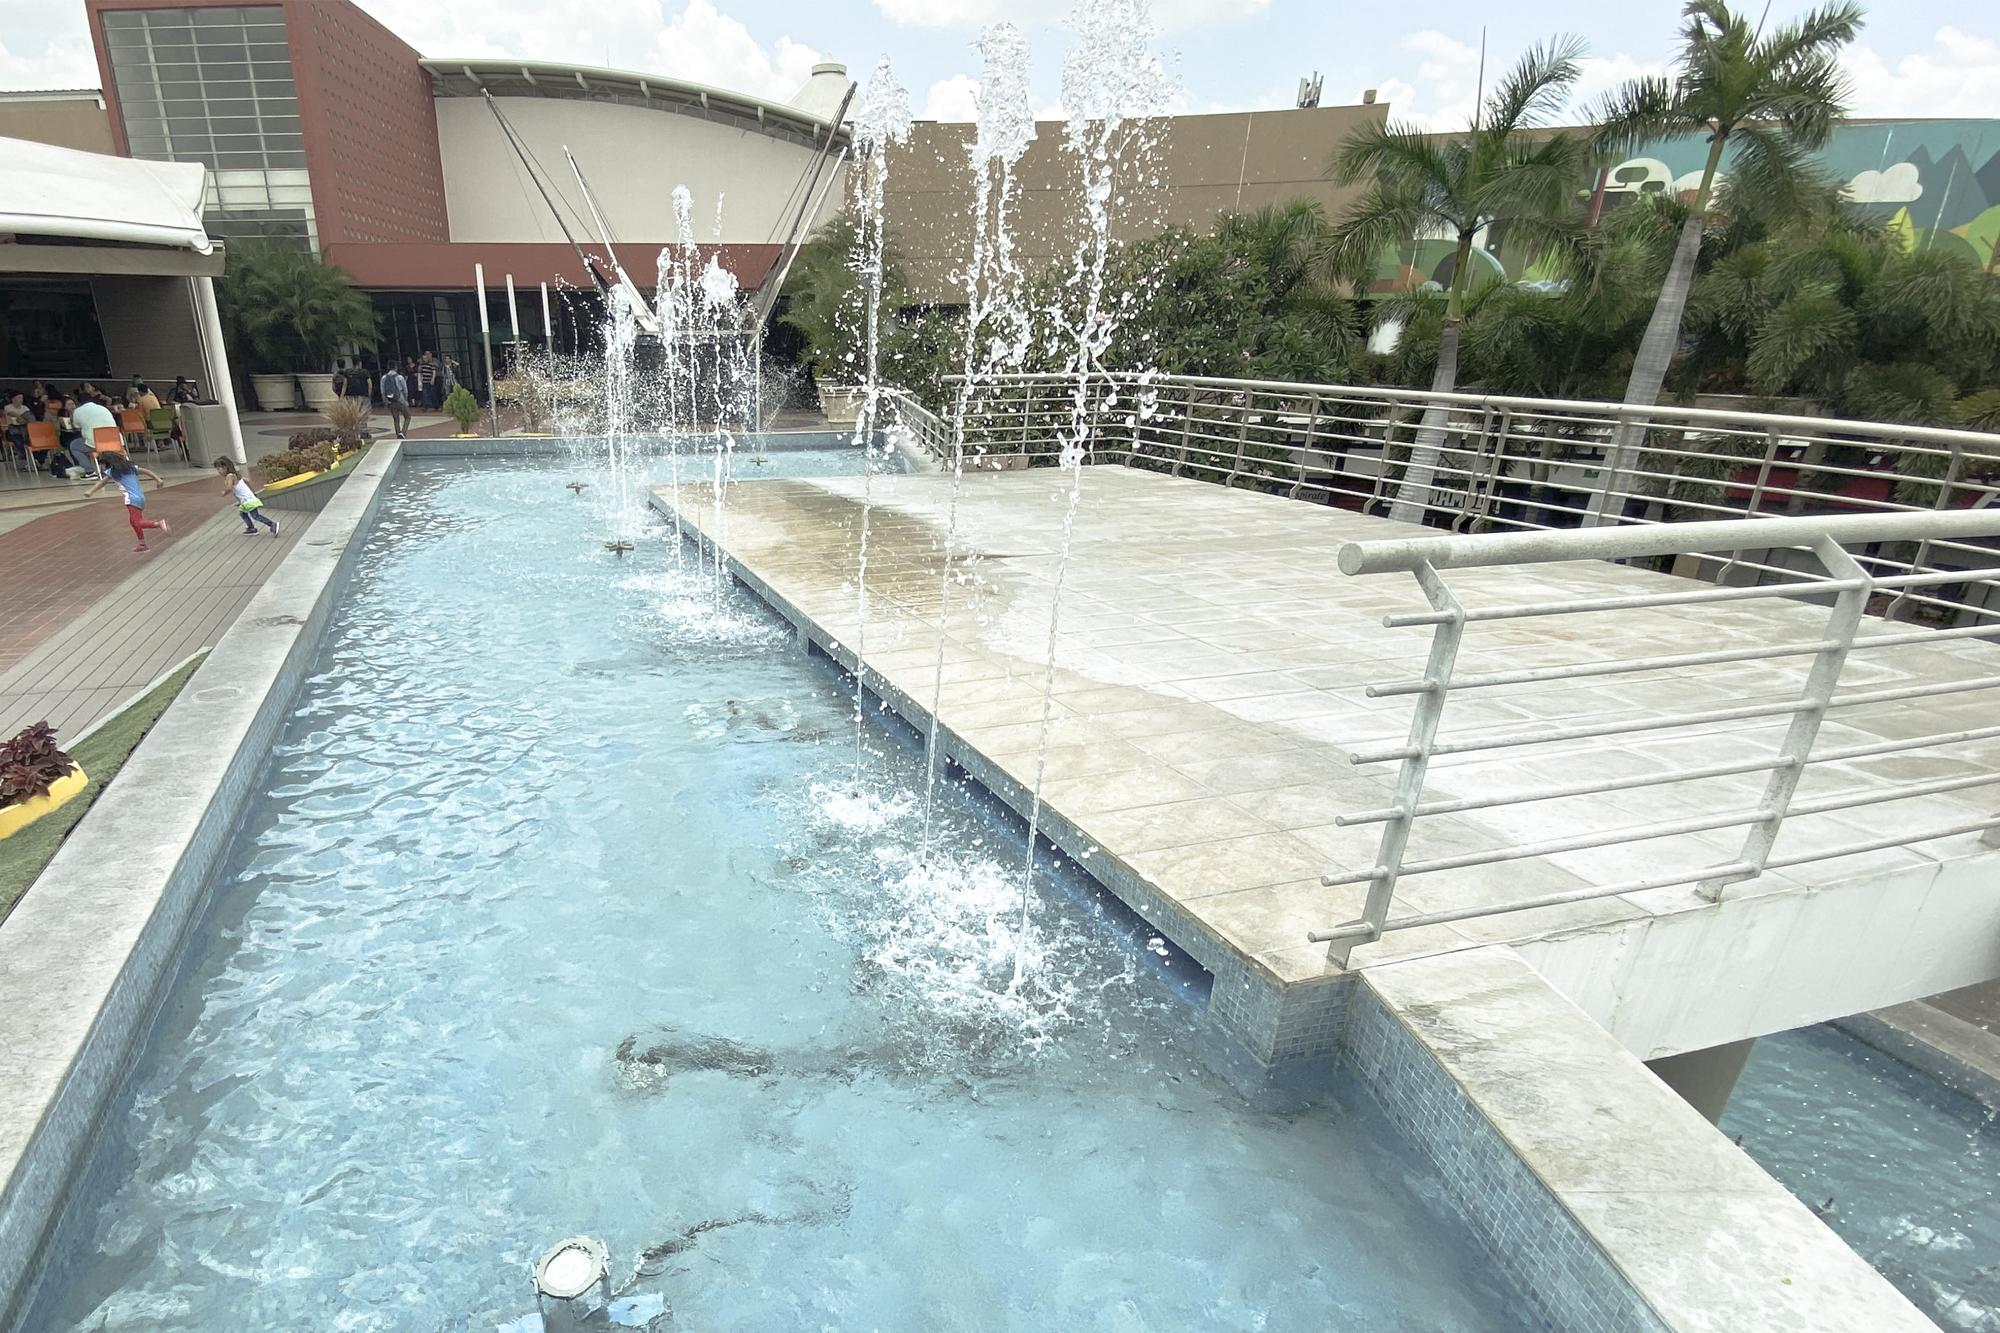 Just 1.1 miles away from San Ernesto, lies an oasis: a cascading fountain in the Plaza Mundo mall. Photo: Carlos Barrera/El Faro